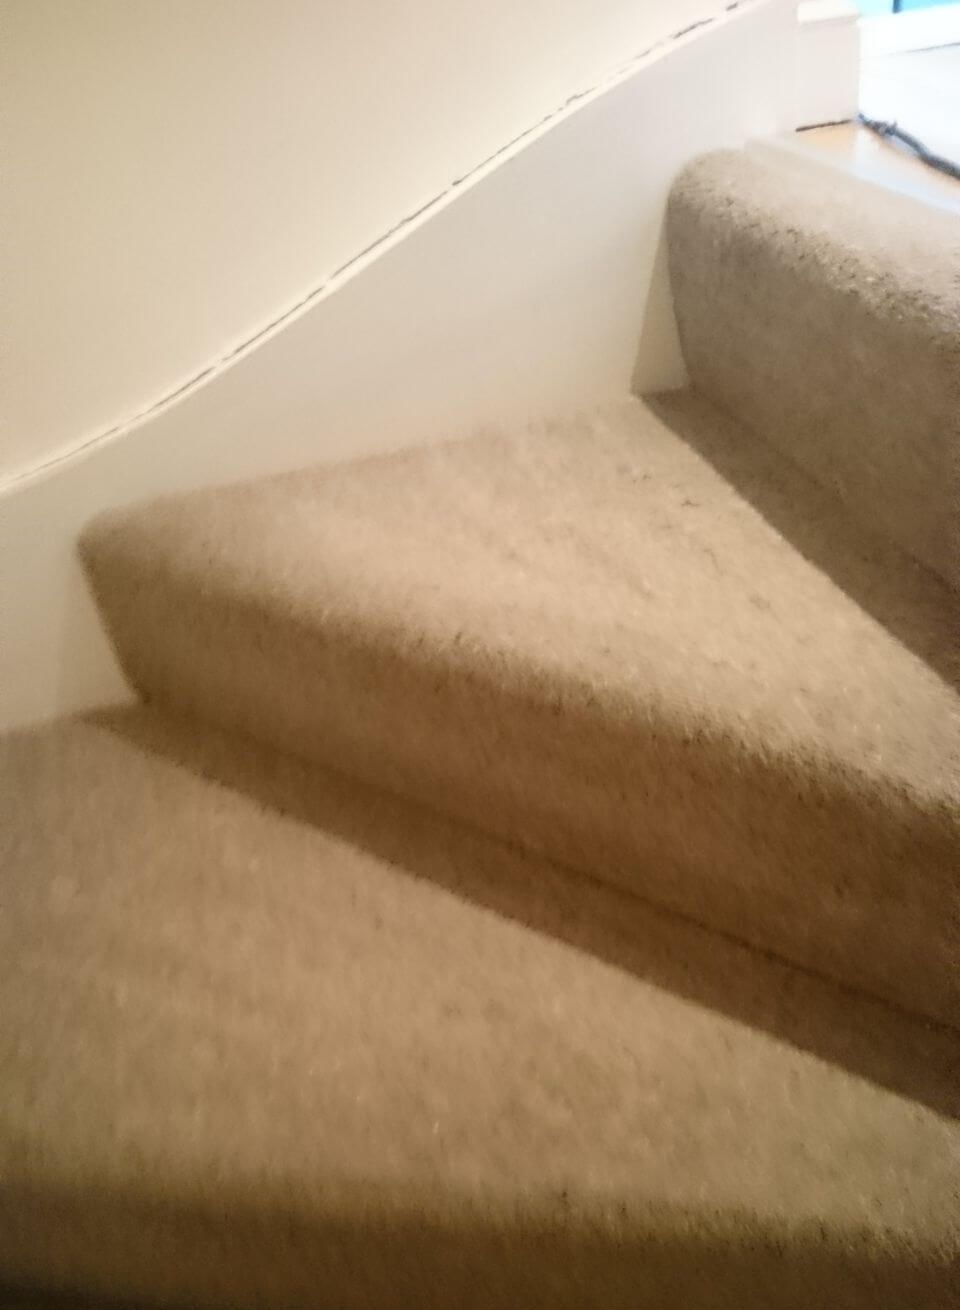 mattress cleaning service in Park Lane